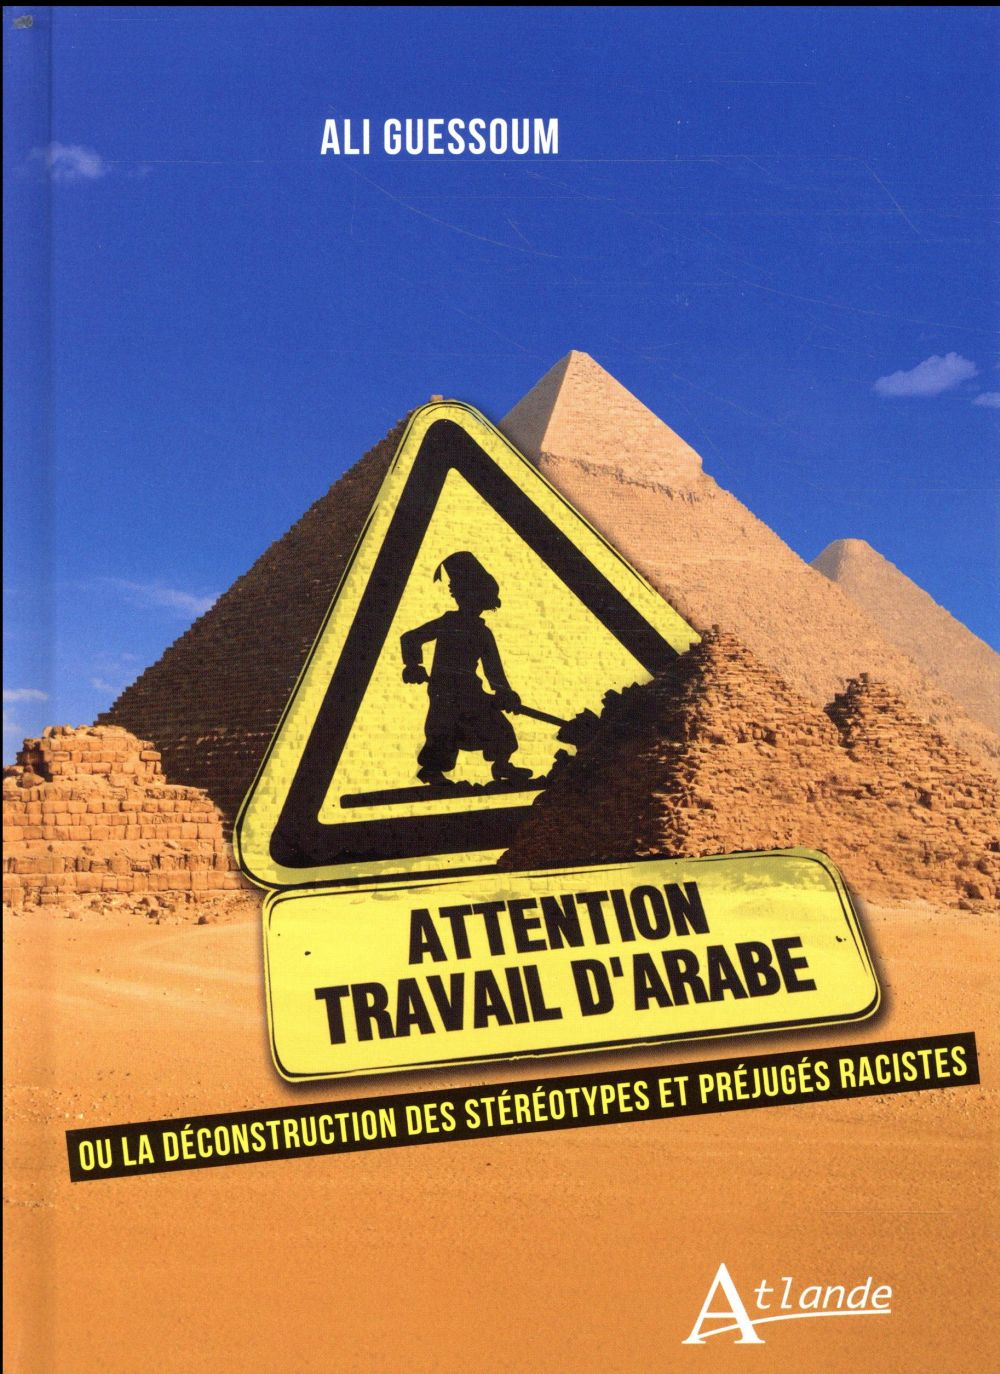 ATTENTION TRAVAIL D'ARABE